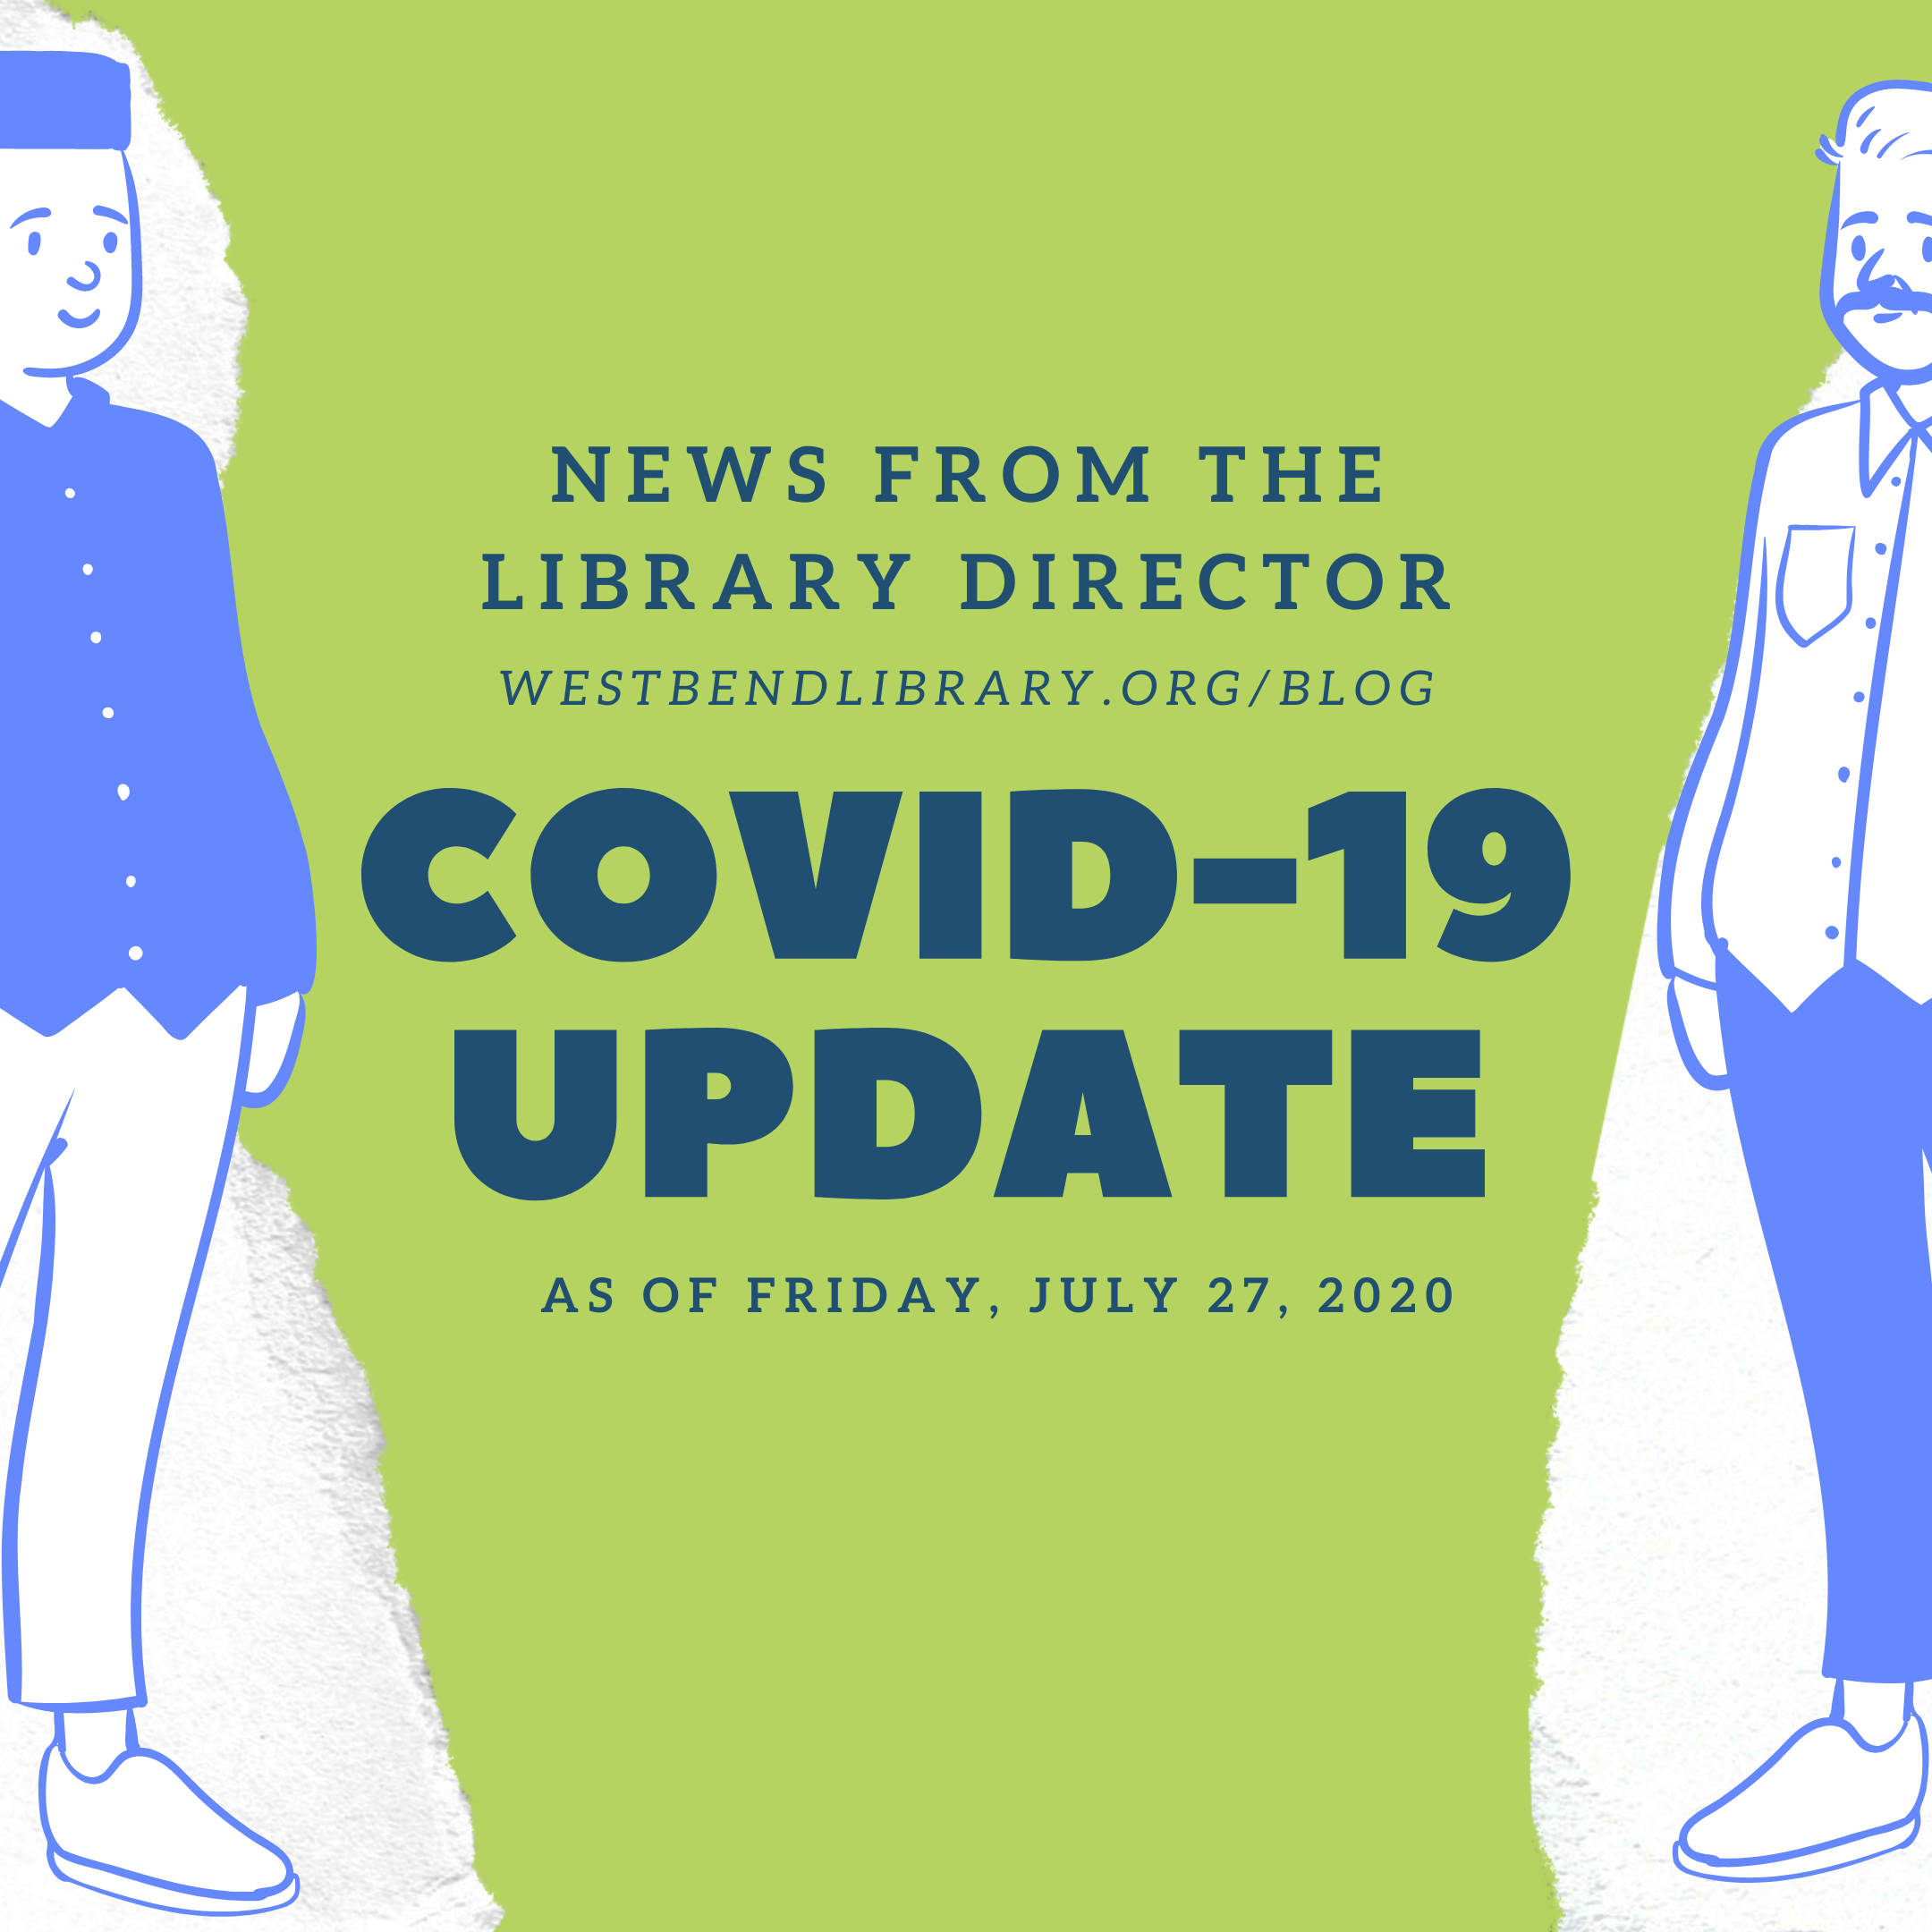 COVID-19 Update from the Director